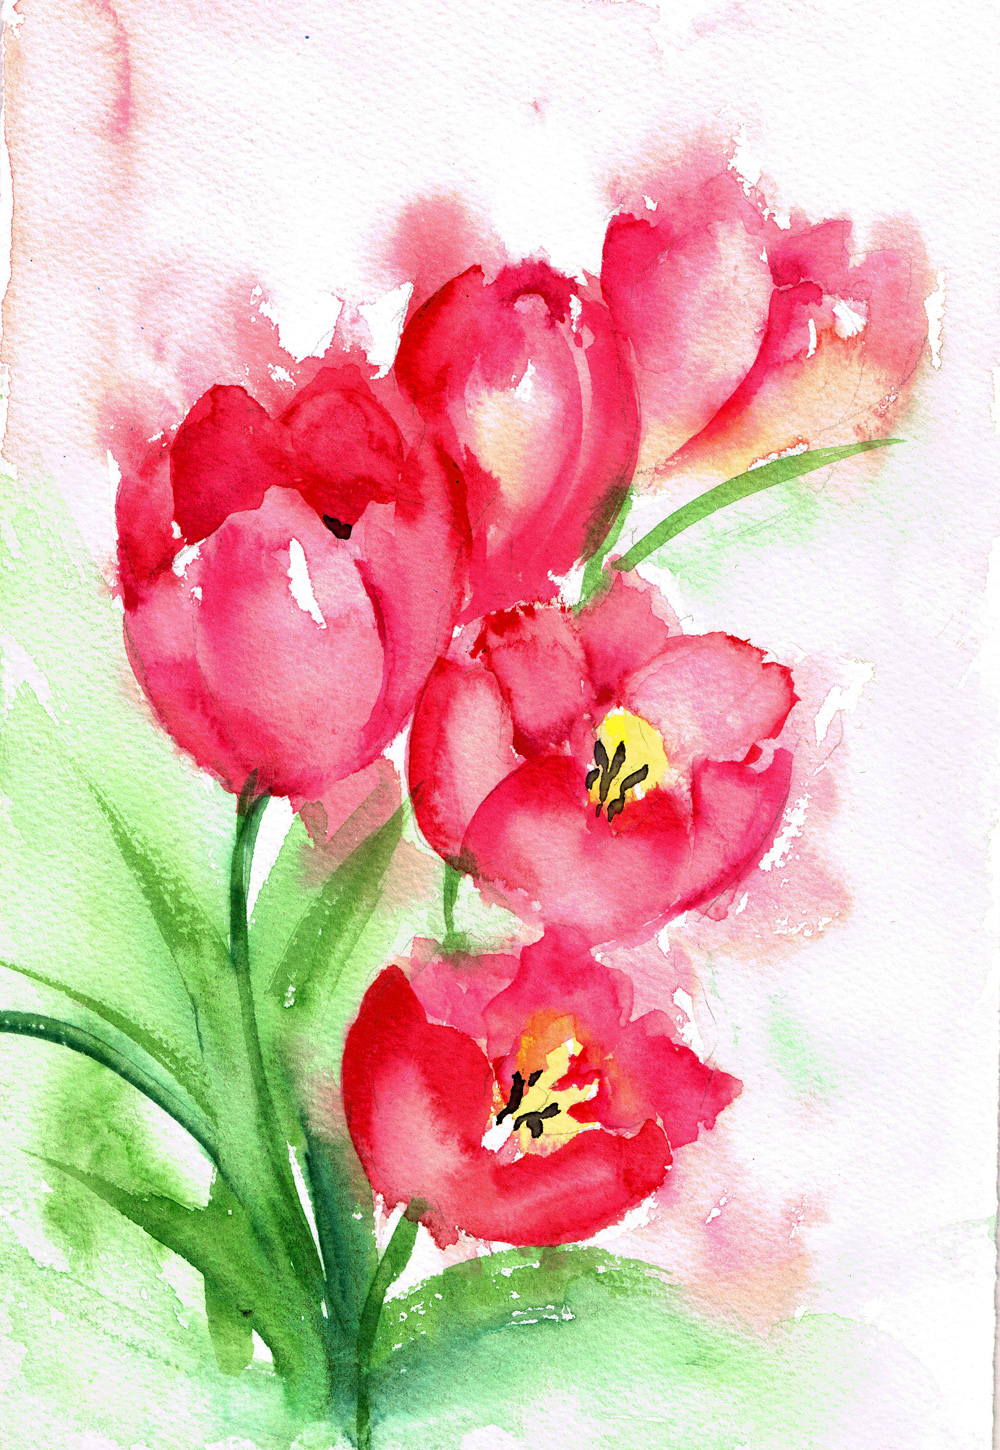 Tulips-no-5-pink-group-kw.jpg